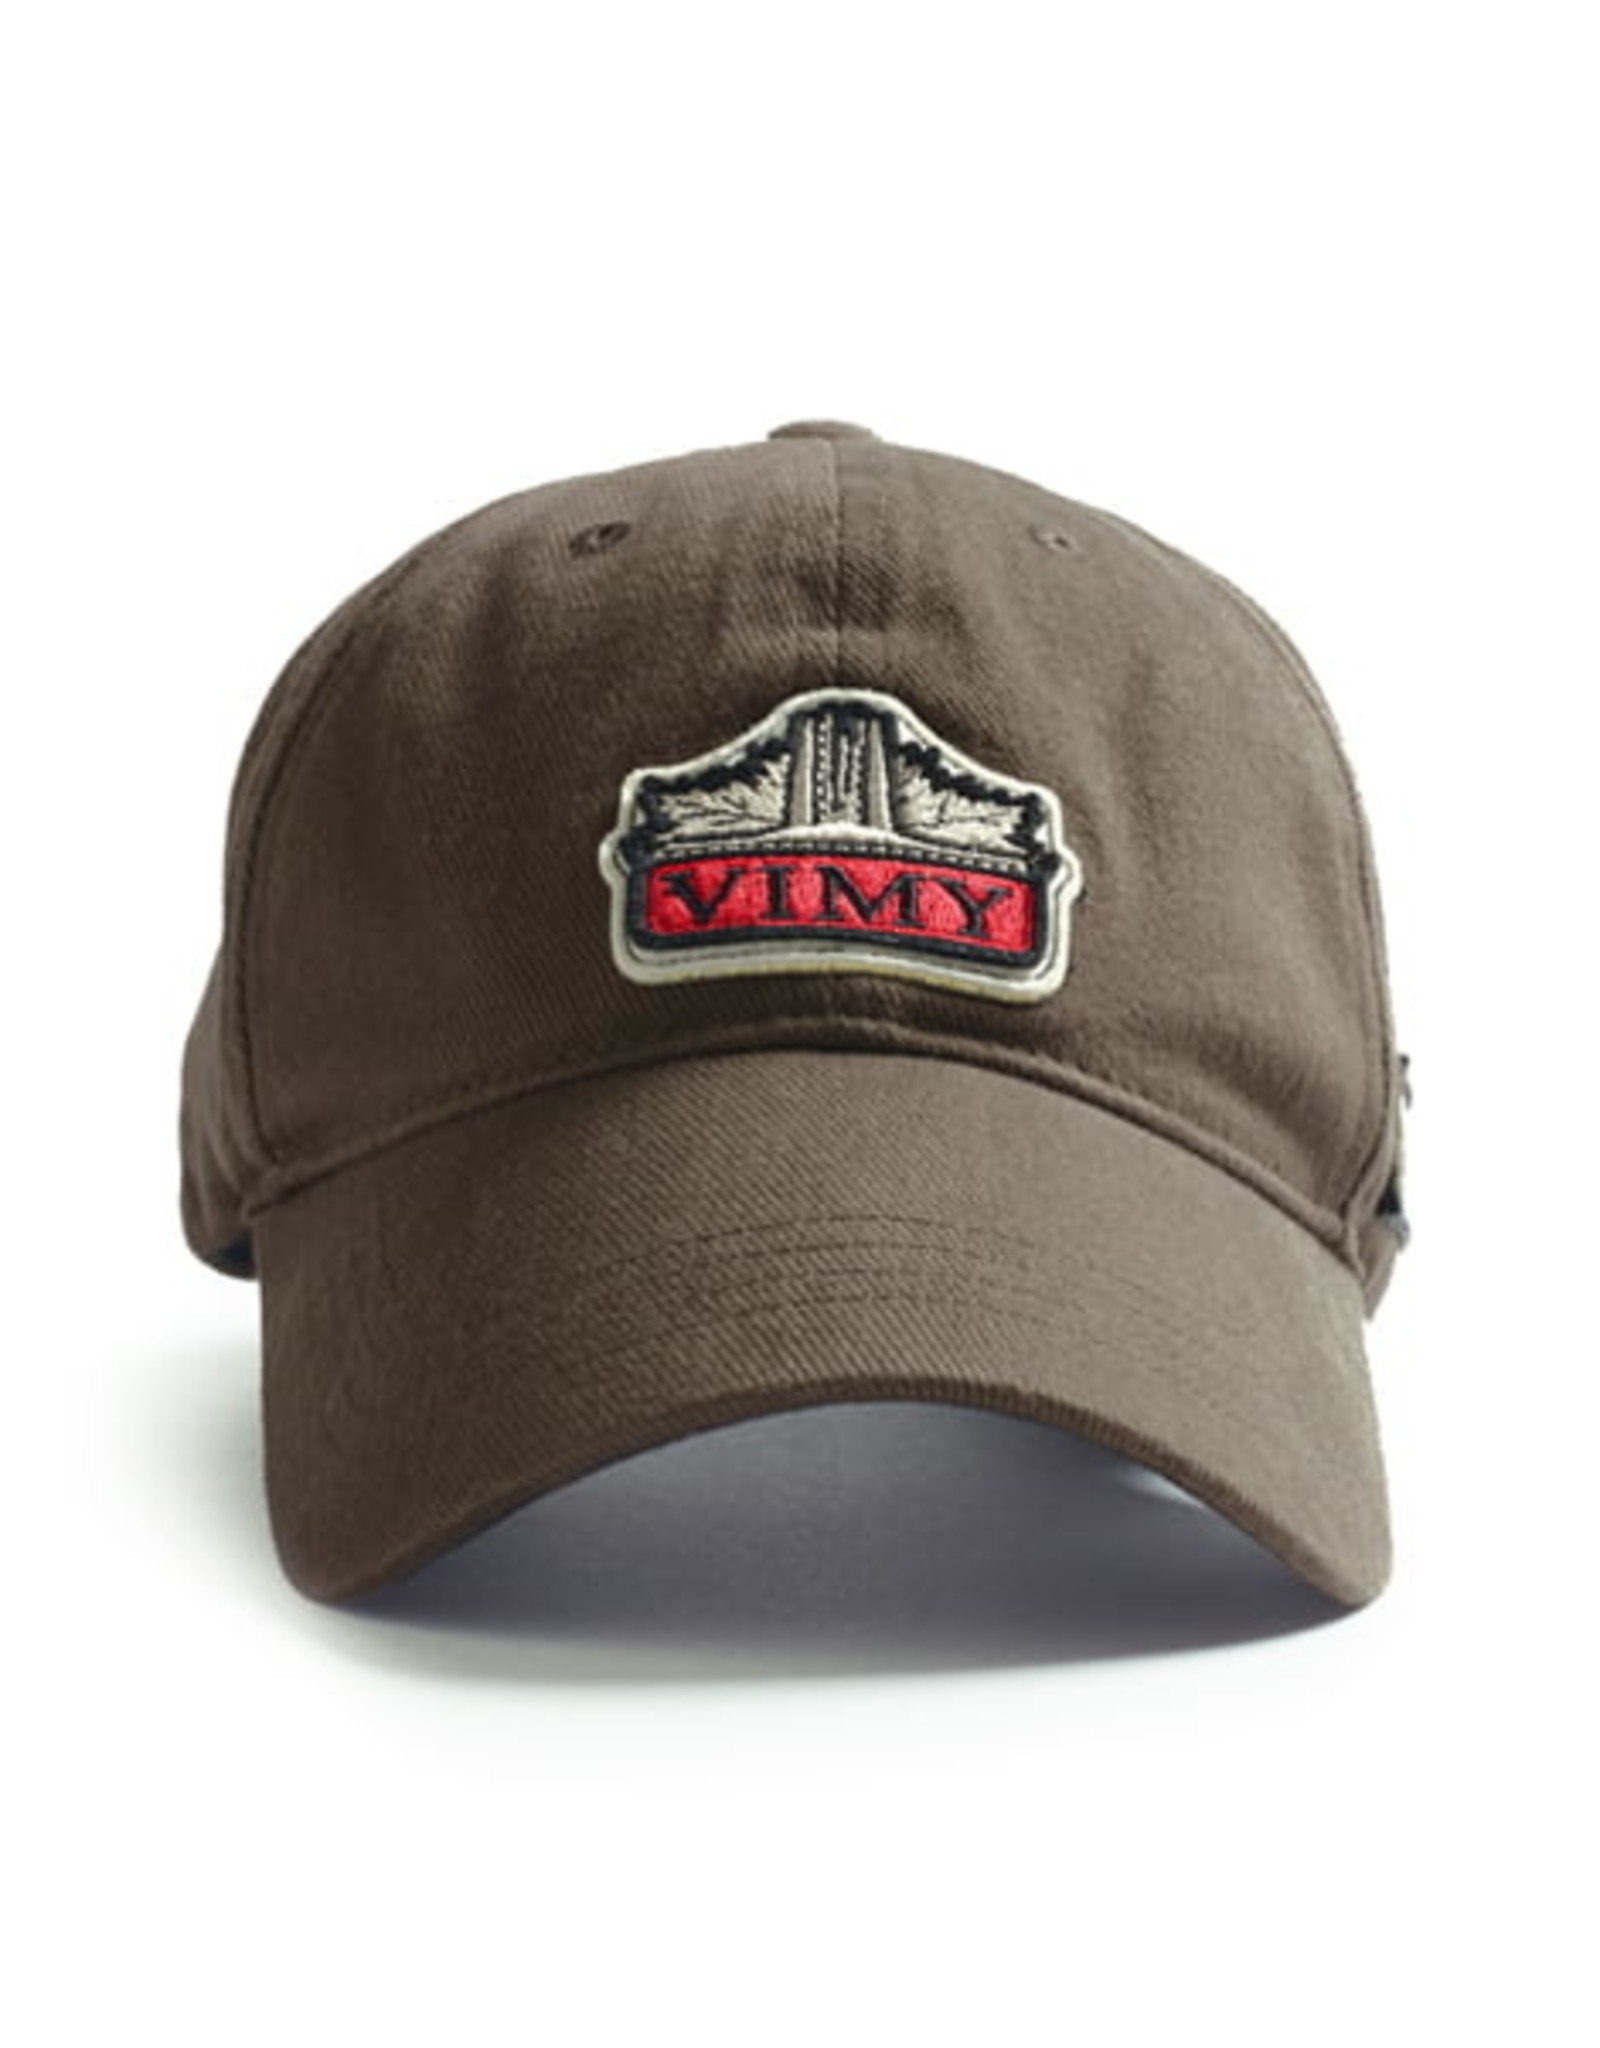 RED CANOE RED CANOE VIMY FOUNDATION CAP